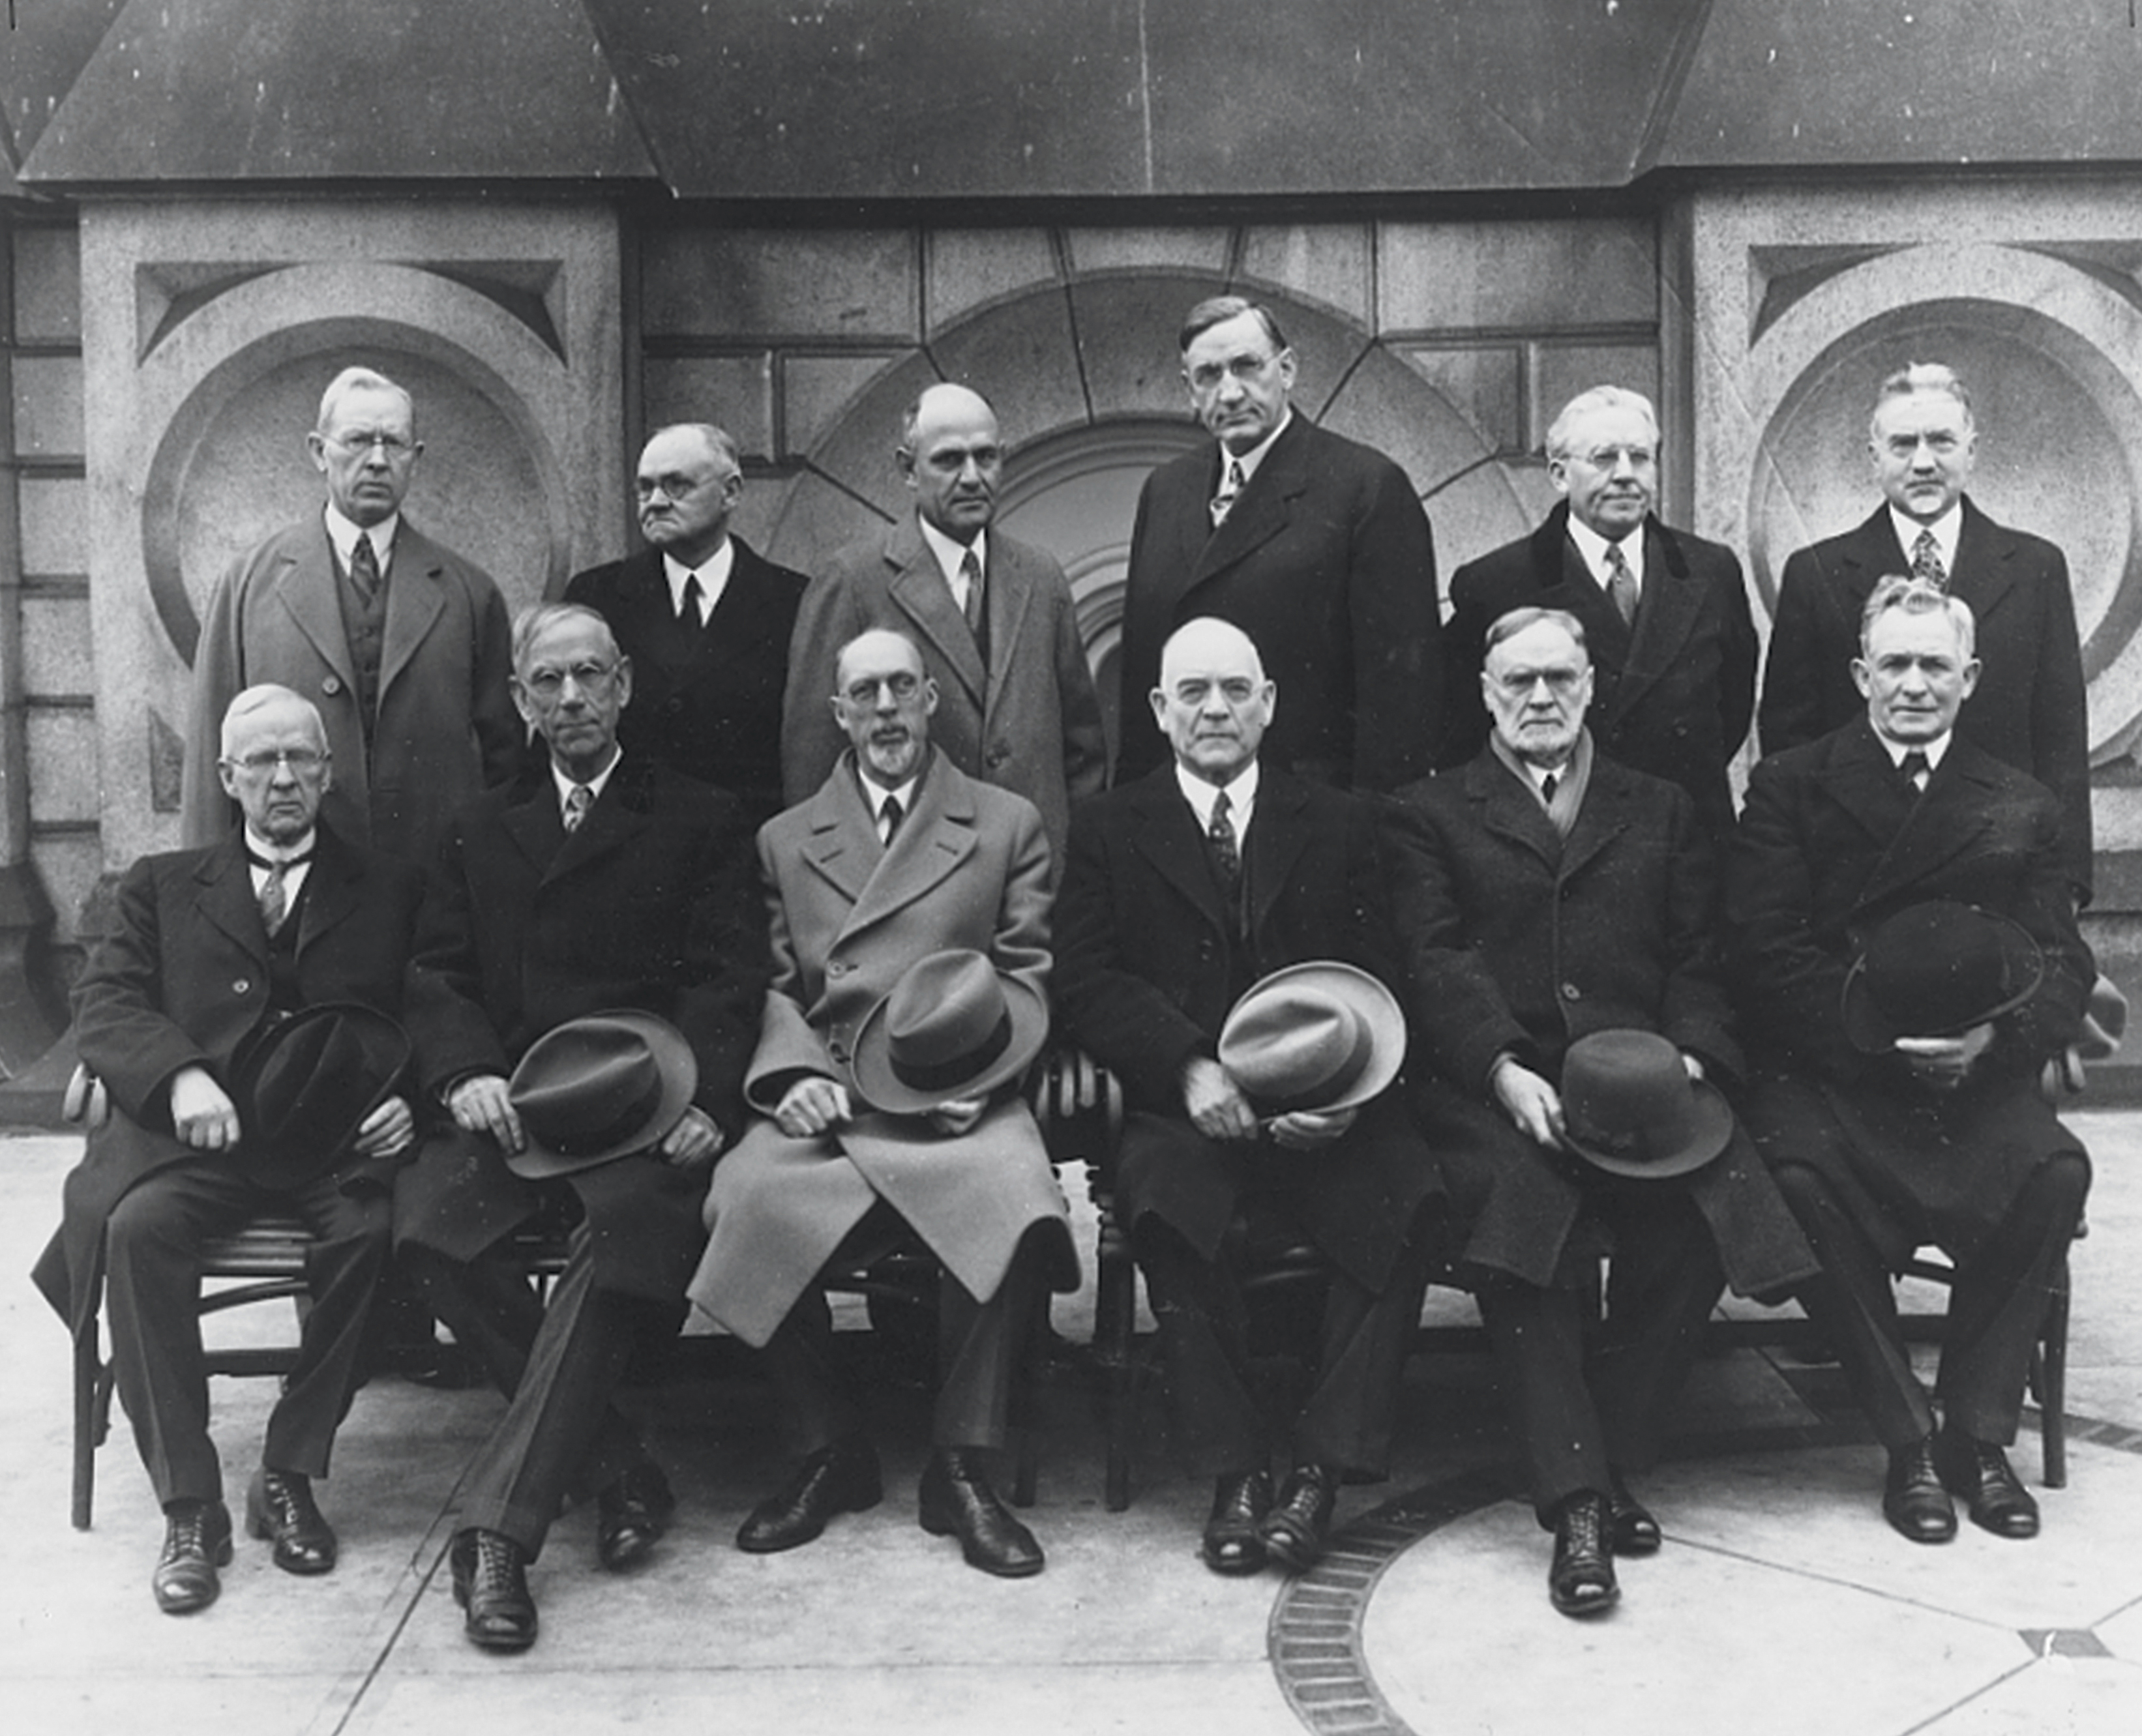 The Quorum of the Twelve Apostles in 1921. Standing, left to right: Joseph Fielding Smith, James E. Talmage, Stephen L Richards, Richard R. Lyman, Melvin J. Ballard, and John A. Widtsoe. Seated, left to right: Rudger Clawson, Reed Smoot, George Albert Smith, George F. Richards, Orson F. Whitney, and David O. McKay. Teachings of Presidents of the Church: George Albert Smith (2011), xx